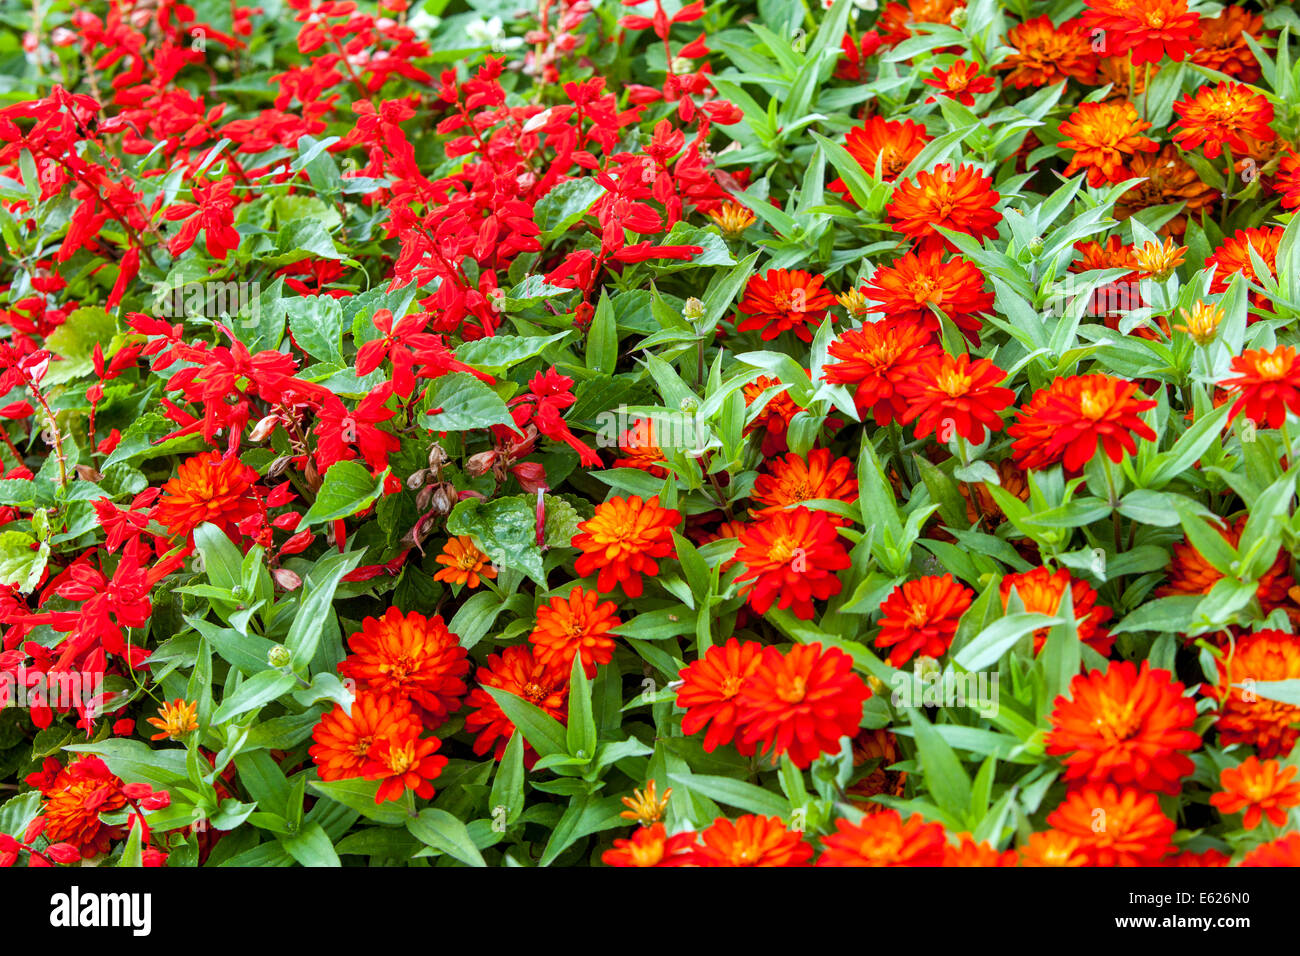 Red salvia flower stock photos red salvia flower stock images alamy colorful flower bed of annual flowers zinnia haageana stock image izmirmasajfo